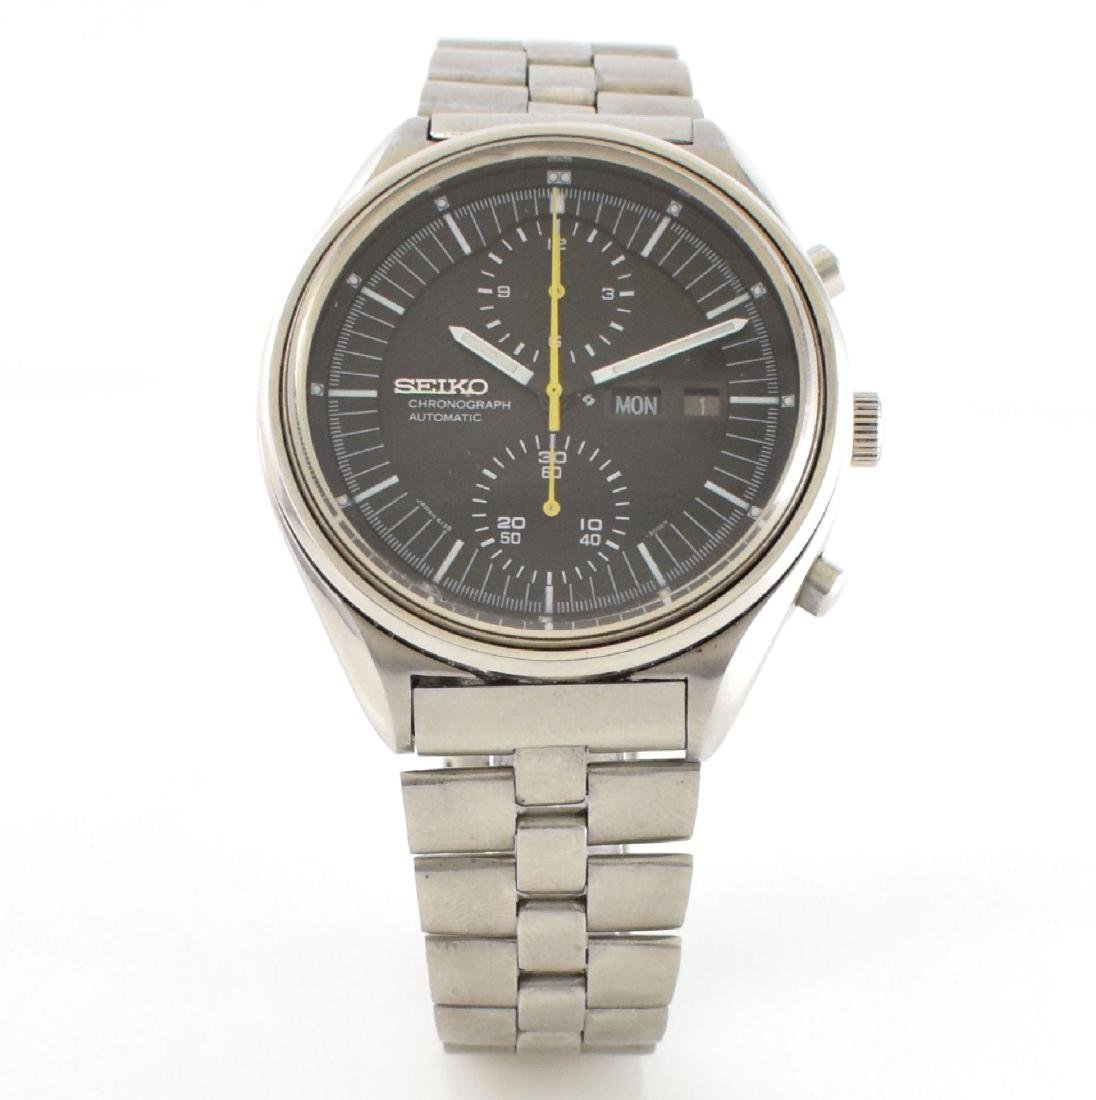 SEIKO gents wristwatch with chronograph in steel - 3